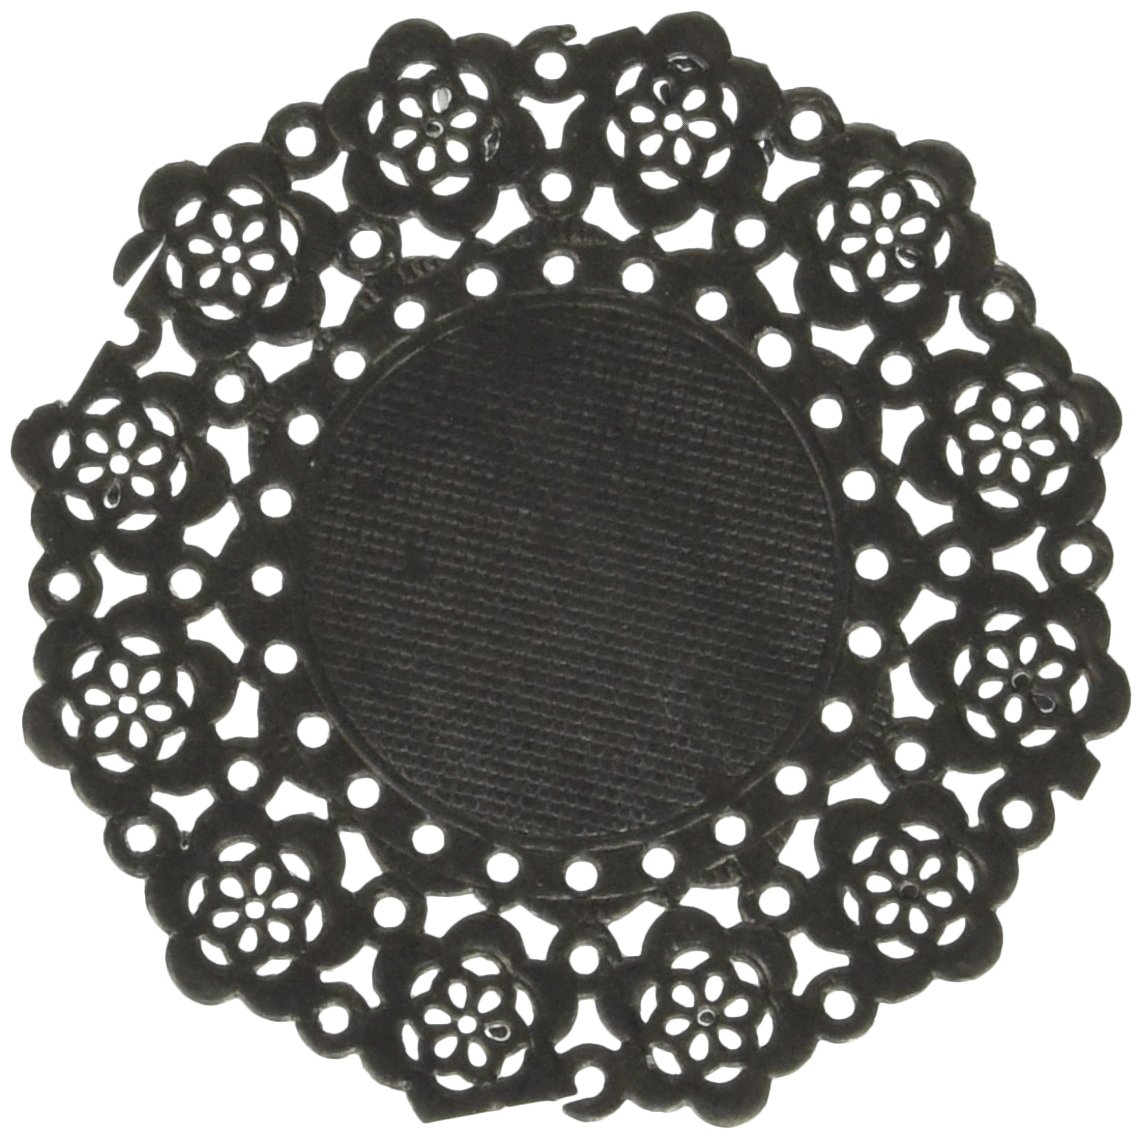 Doodlebug Mini Doilies (75 Pack), Beetle Black